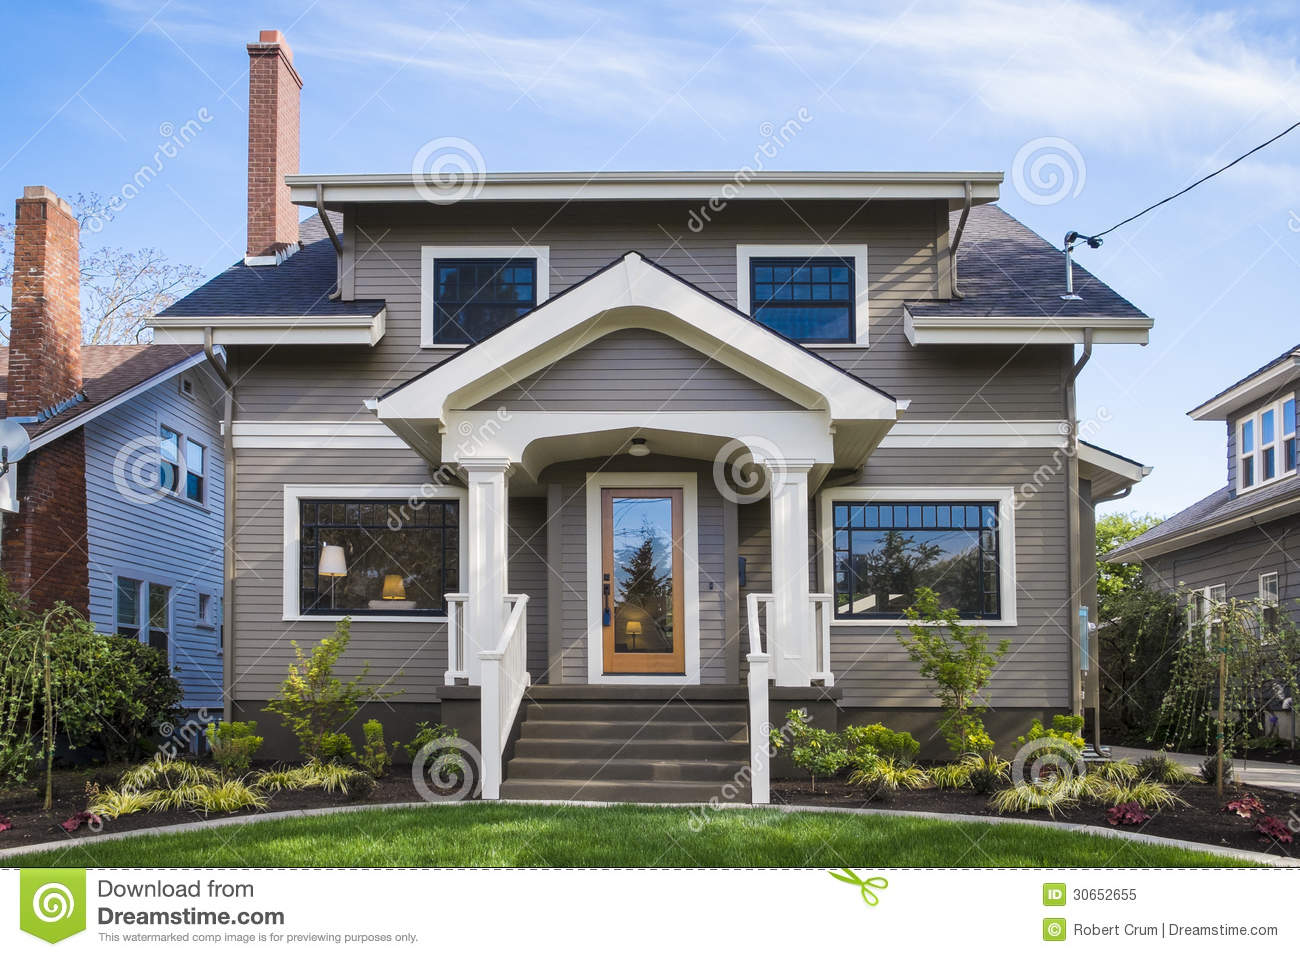 American Craftsman House Royalty Free Stock Photo Image